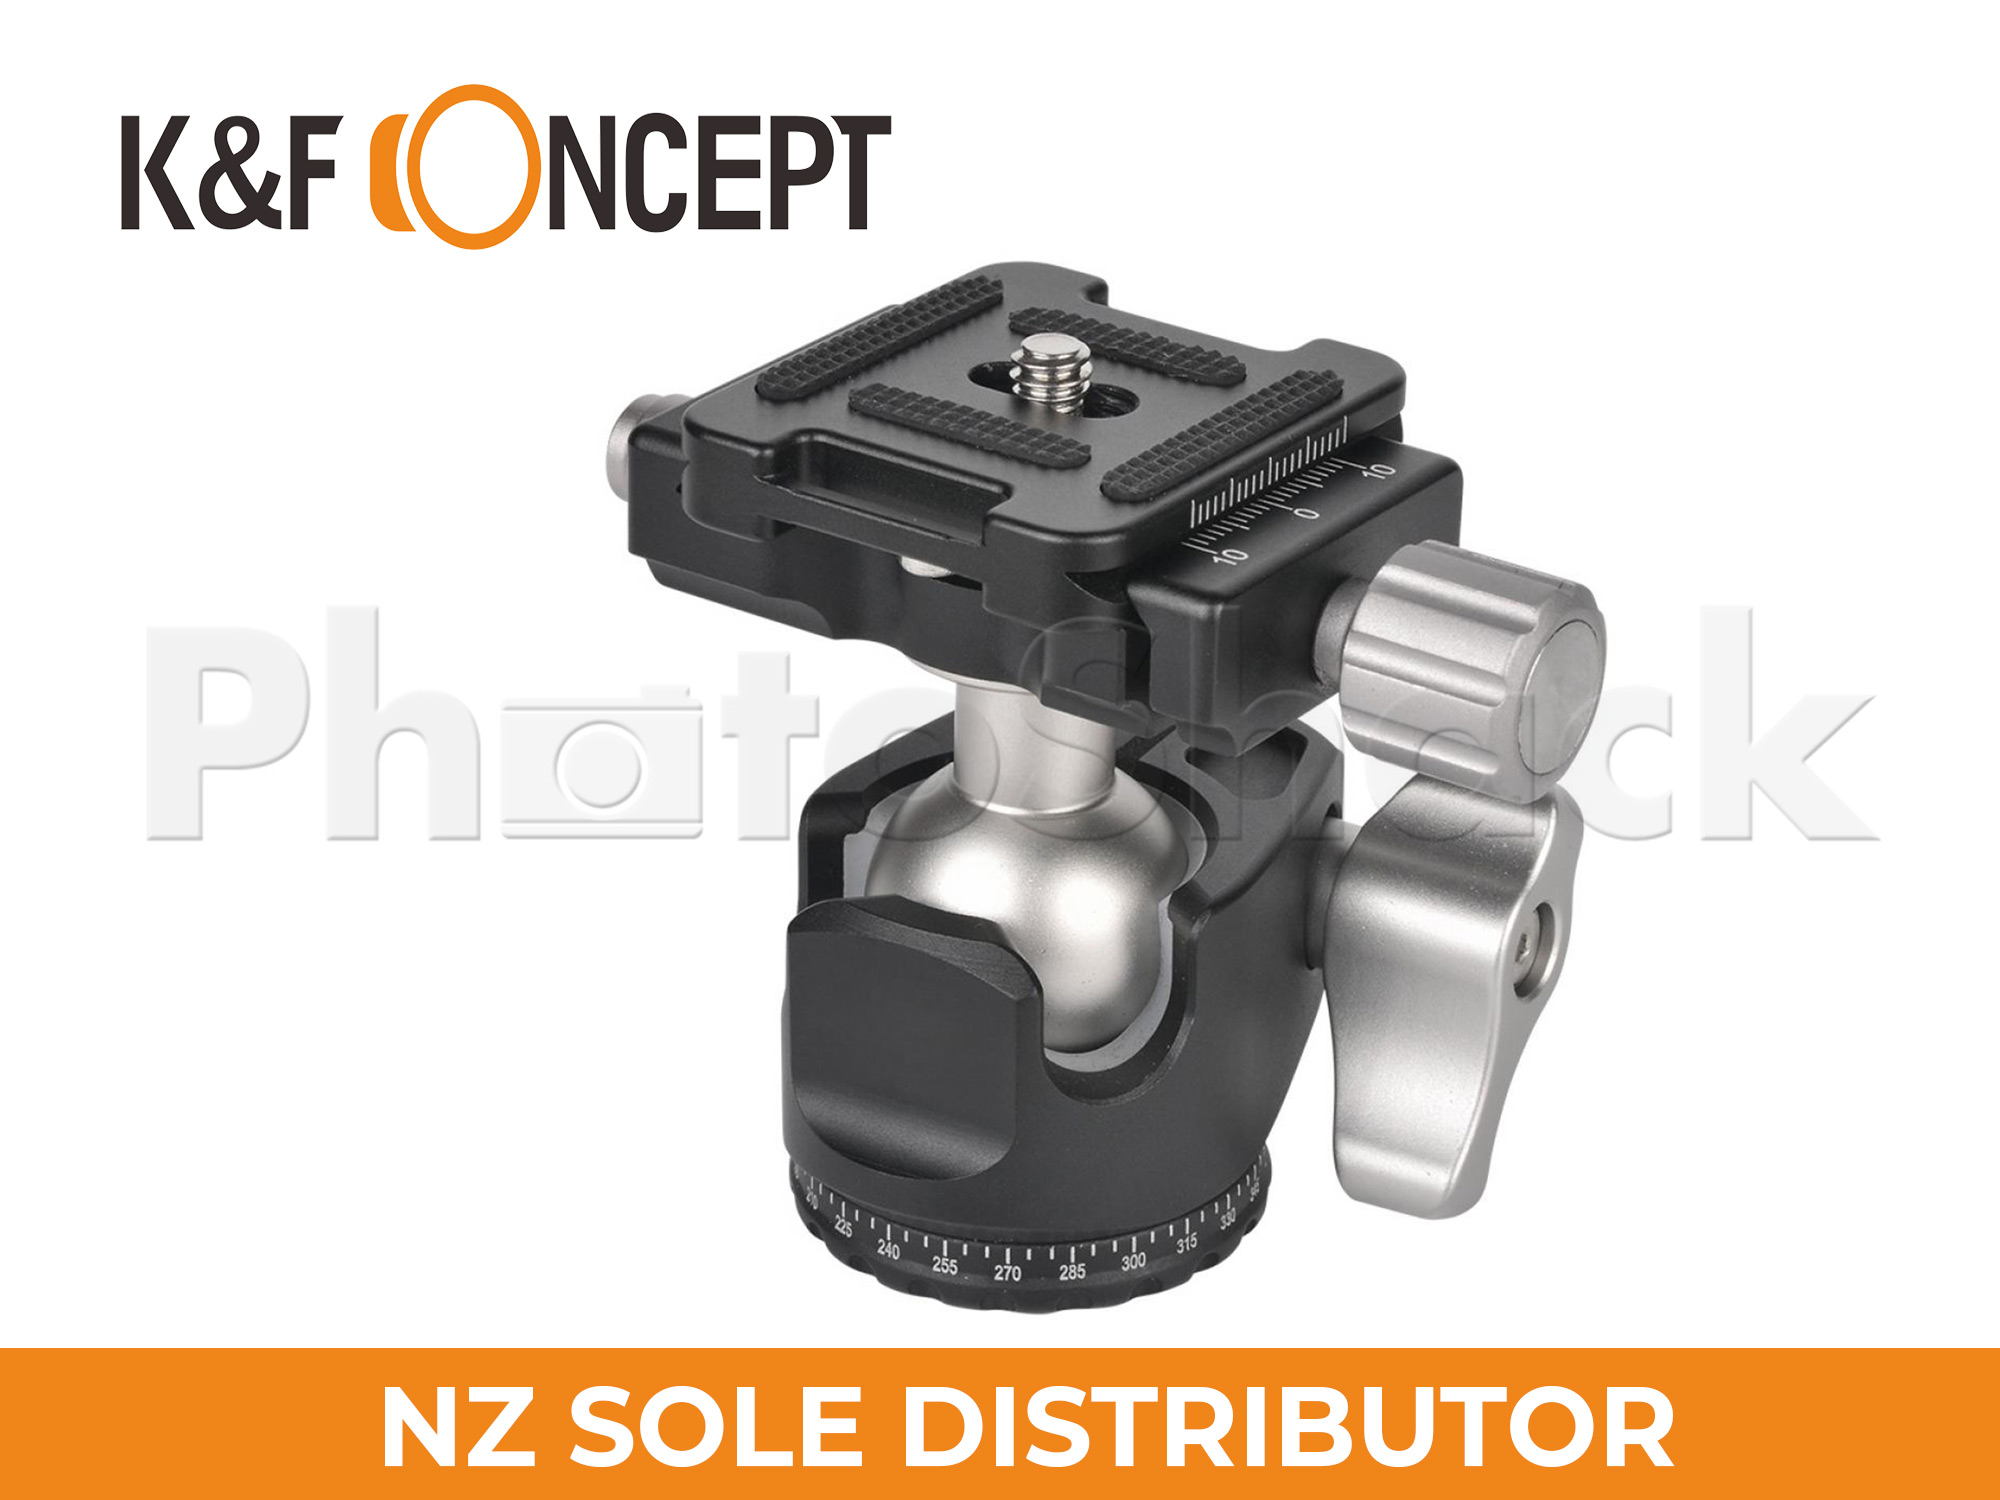 K&F Concept 25mm ball head for Tripod & Monopod